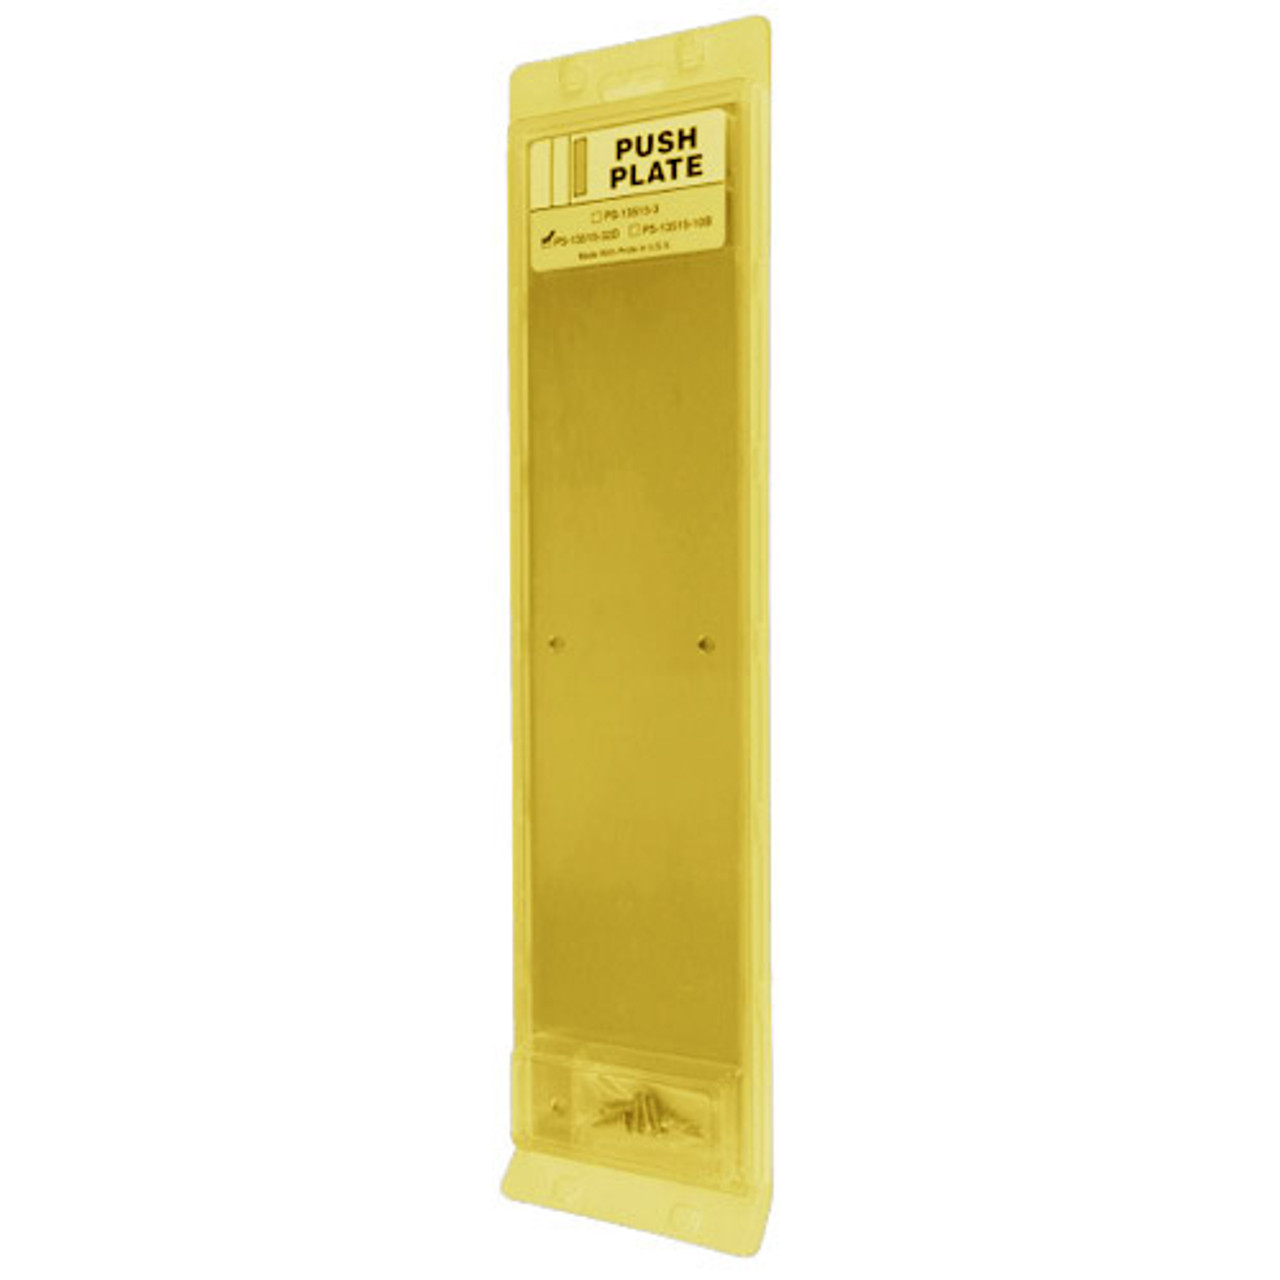 PS-13515-605 Don Jo Push Plate in Bright Brass Finish